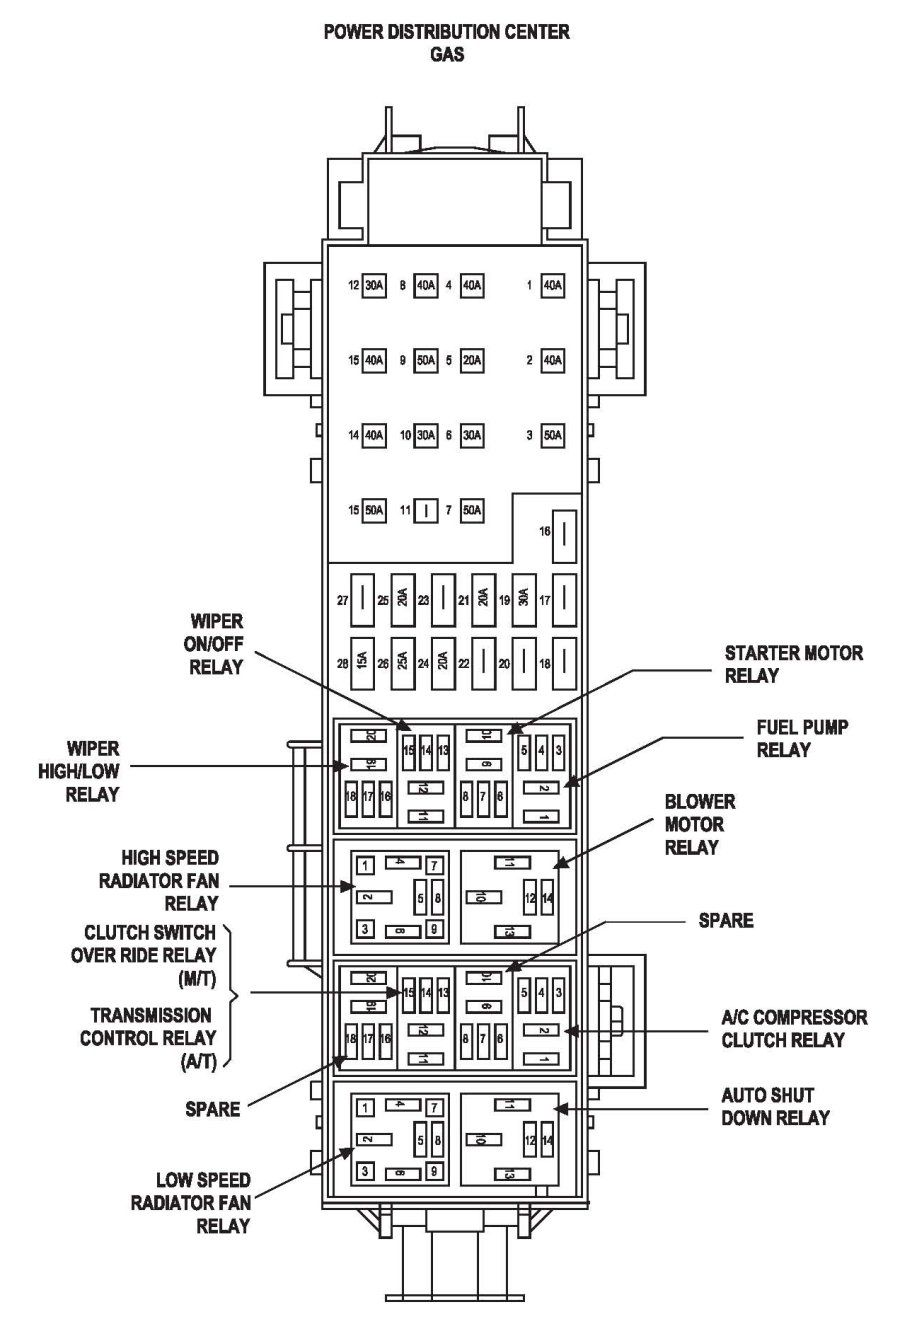 2006 jeep fuse box wiring diagram schema 2006 jeep liberty fuse box location wiring diagram review [ 900 x 1336 Pixel ]